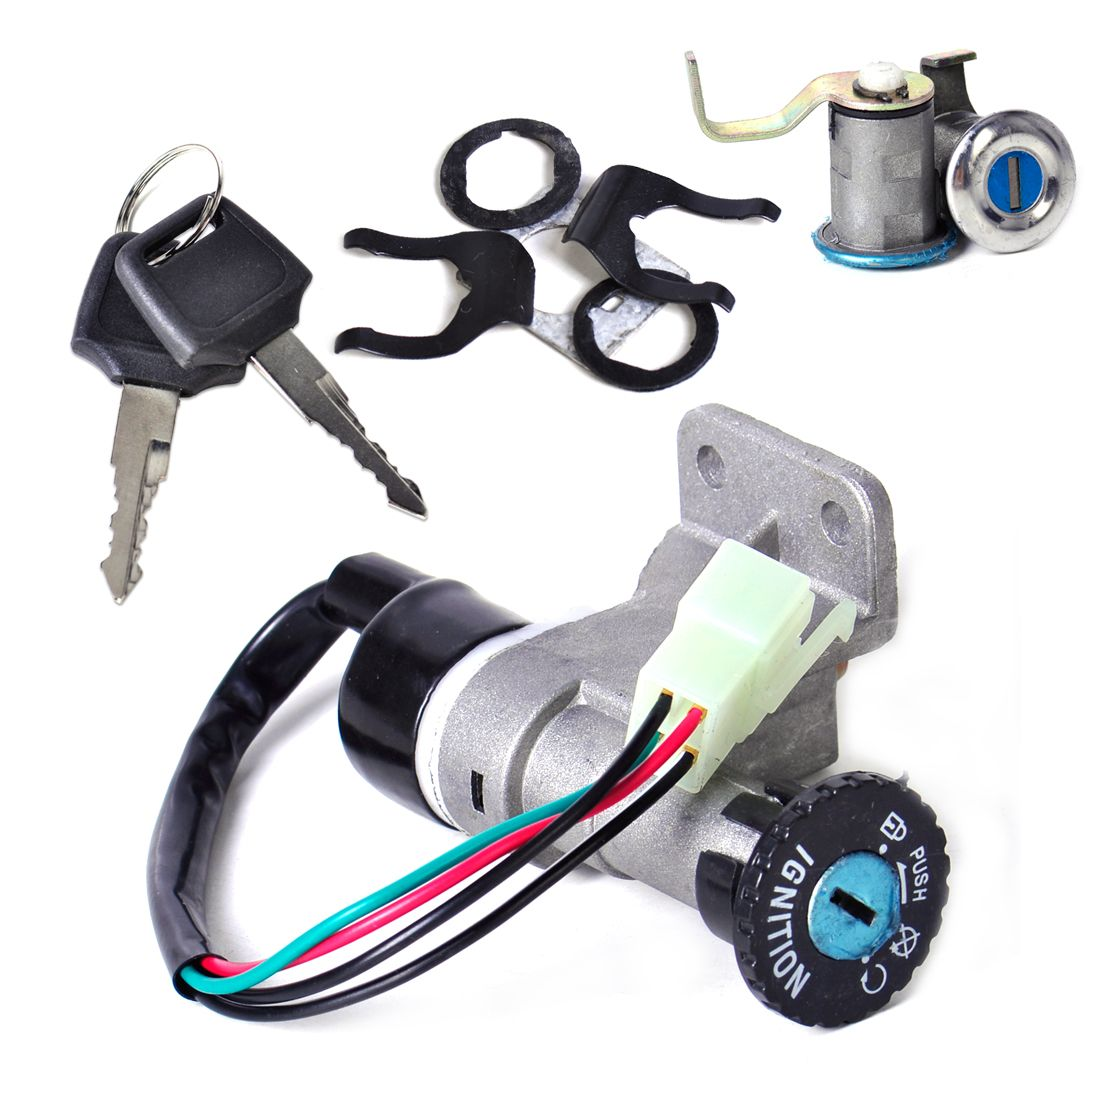 DWCX 4 pin Ignition Key Switch Lock Toolbox Cushion Lock for Chinese GY6 50cc 125cc 150cc 250cc ATV Jonway Roketa Moped Scooter